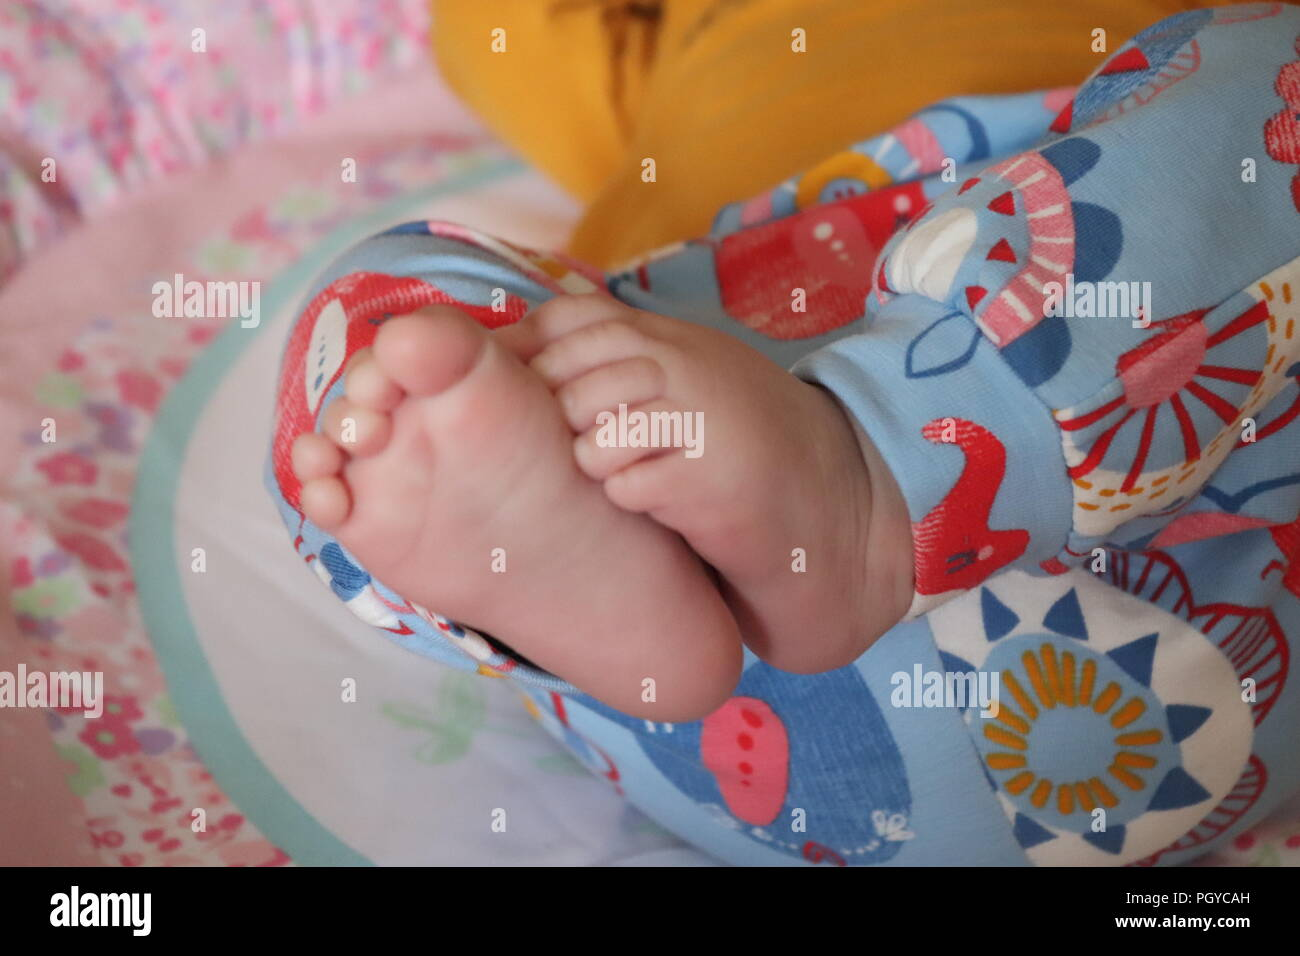 New born baby feet and toes. Cute bare feet all soft and pink - Stock Image